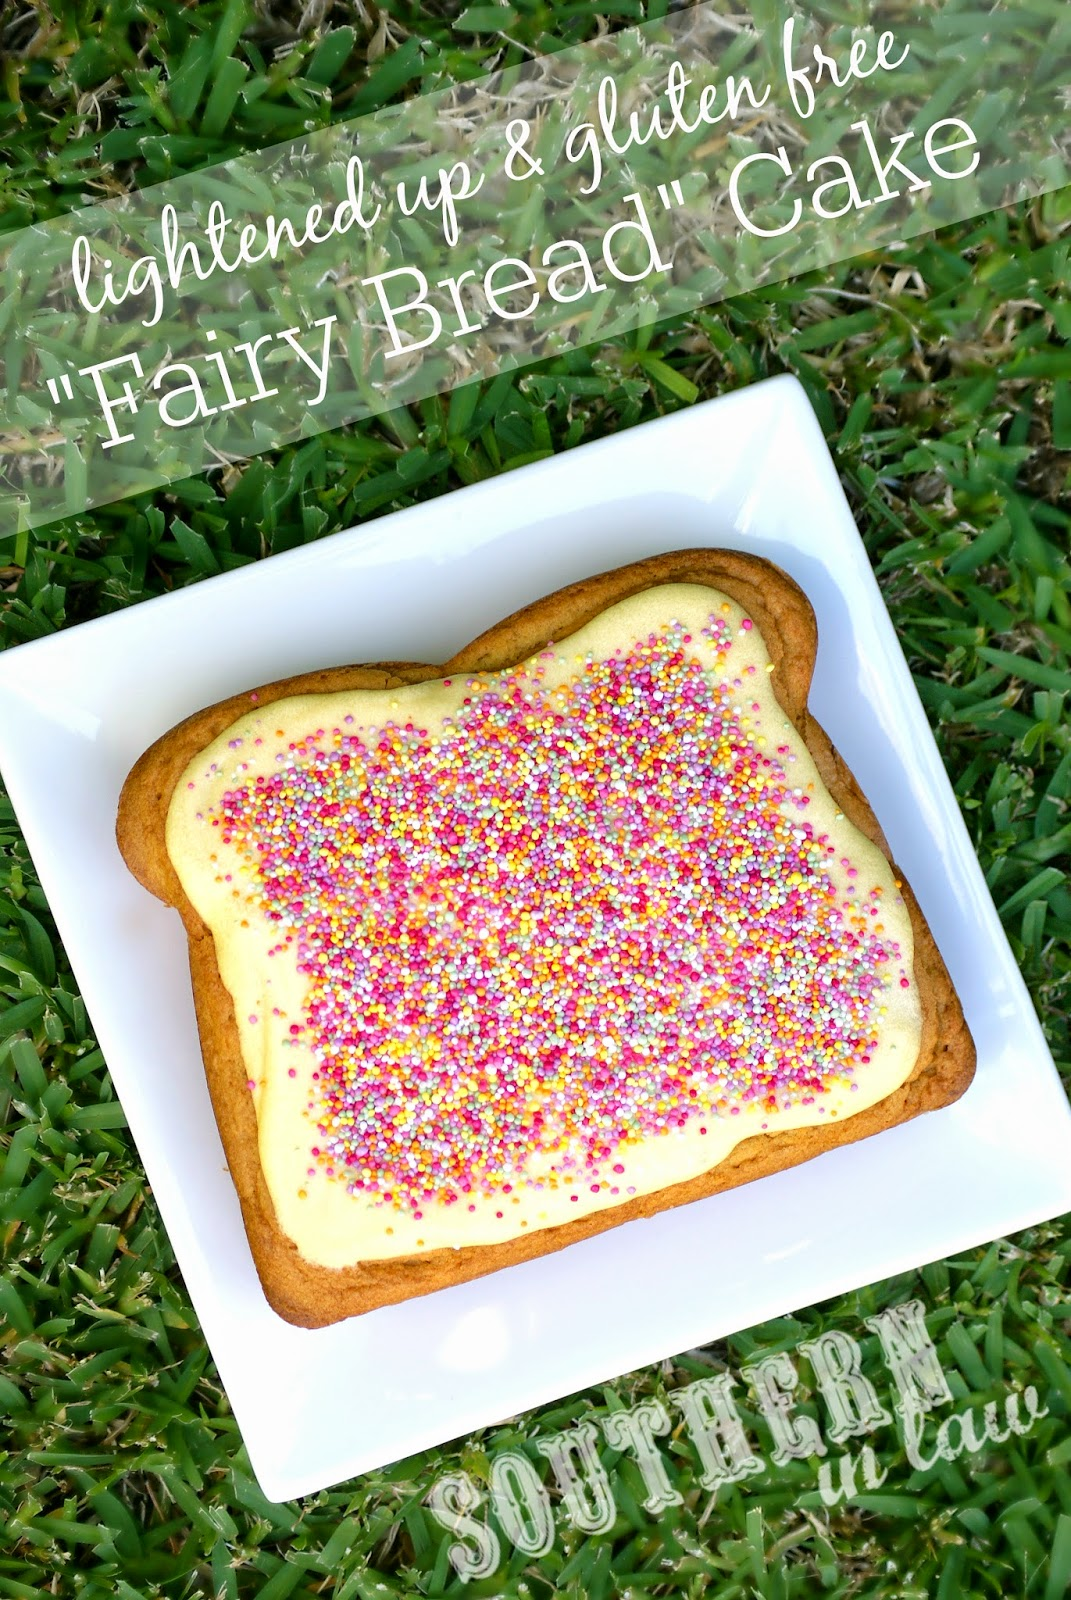 Lightened Up Fairy Bread Cake Recipe - Low Fat Butter Cake Recipe - Lower fat, lower sugar, gluten free, kid friendly, healthy kids party recipes, cake recipes